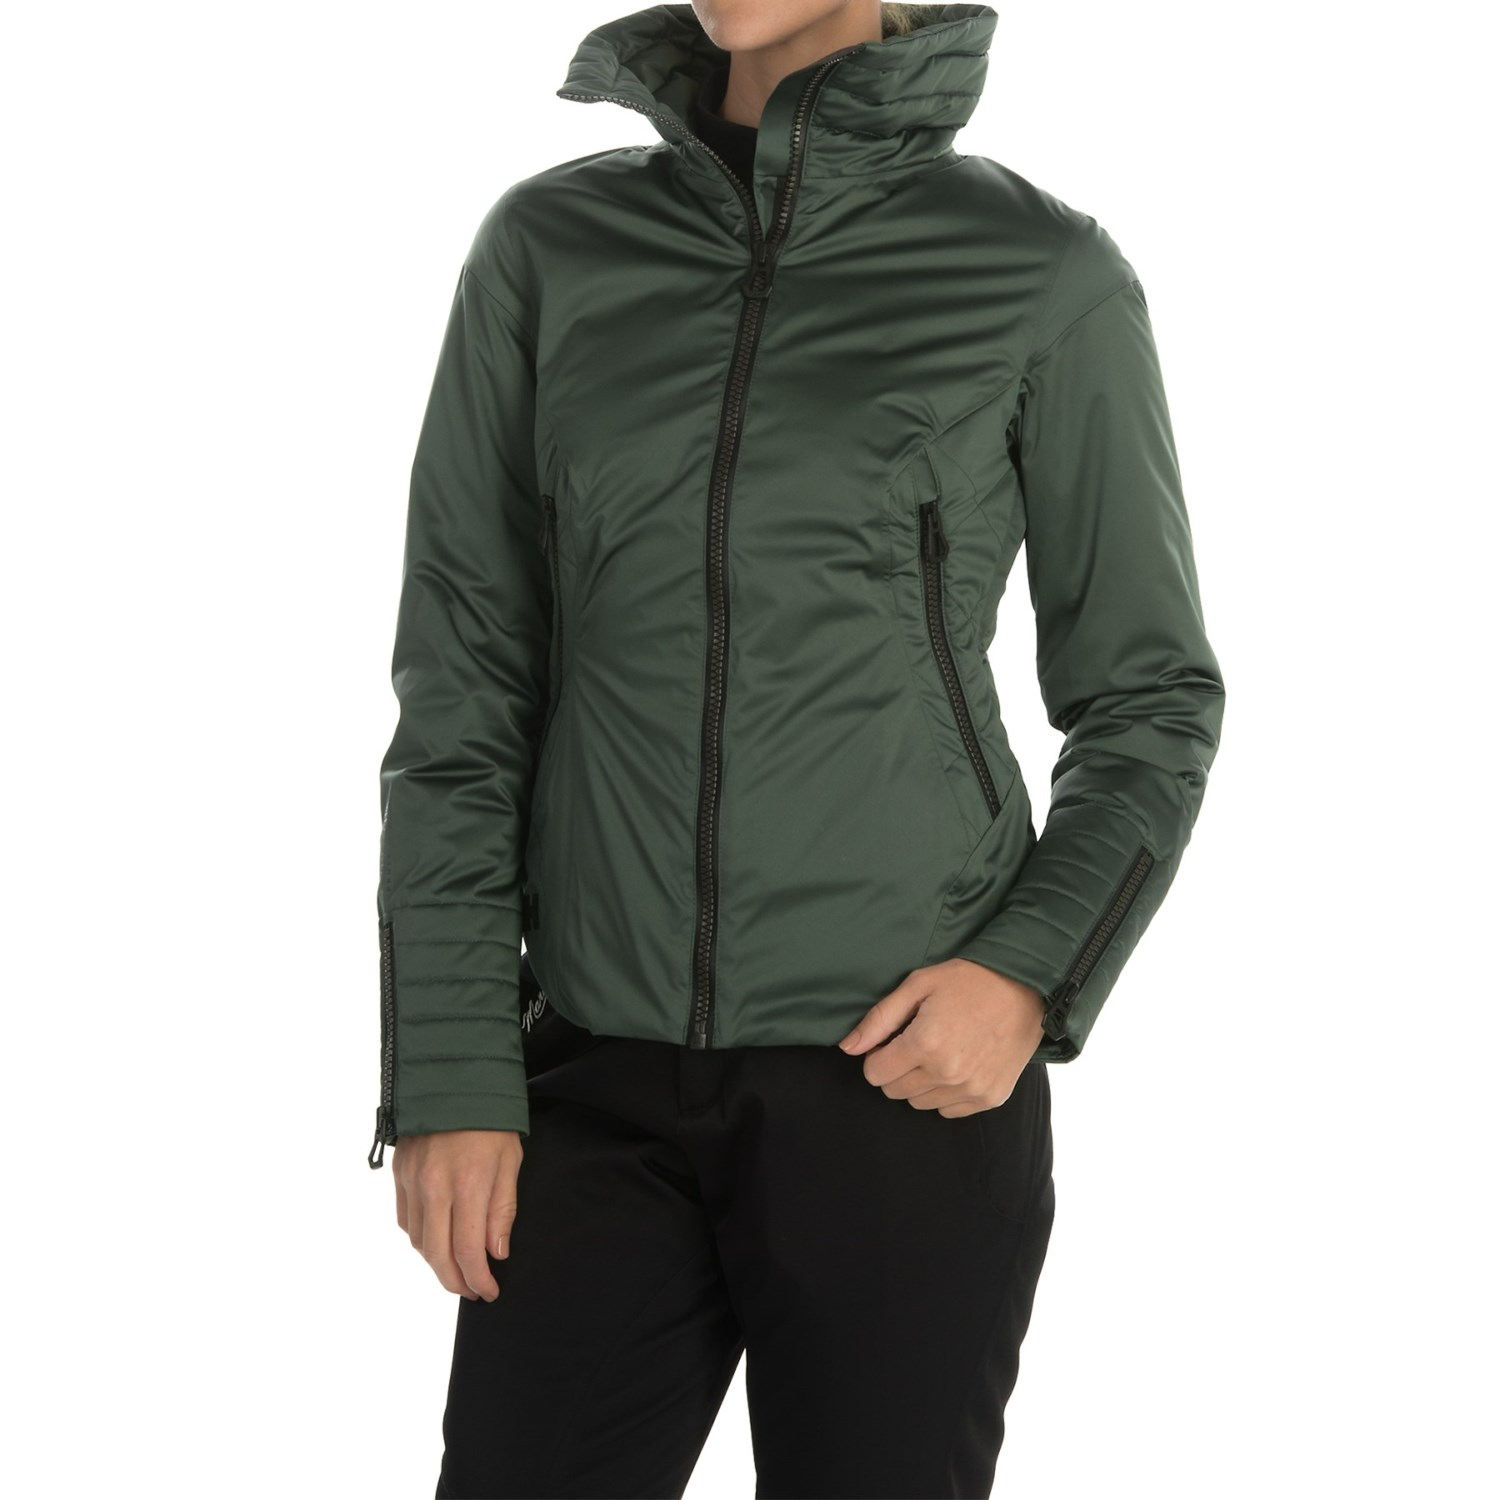 Helly hansen womens ski jacket sale